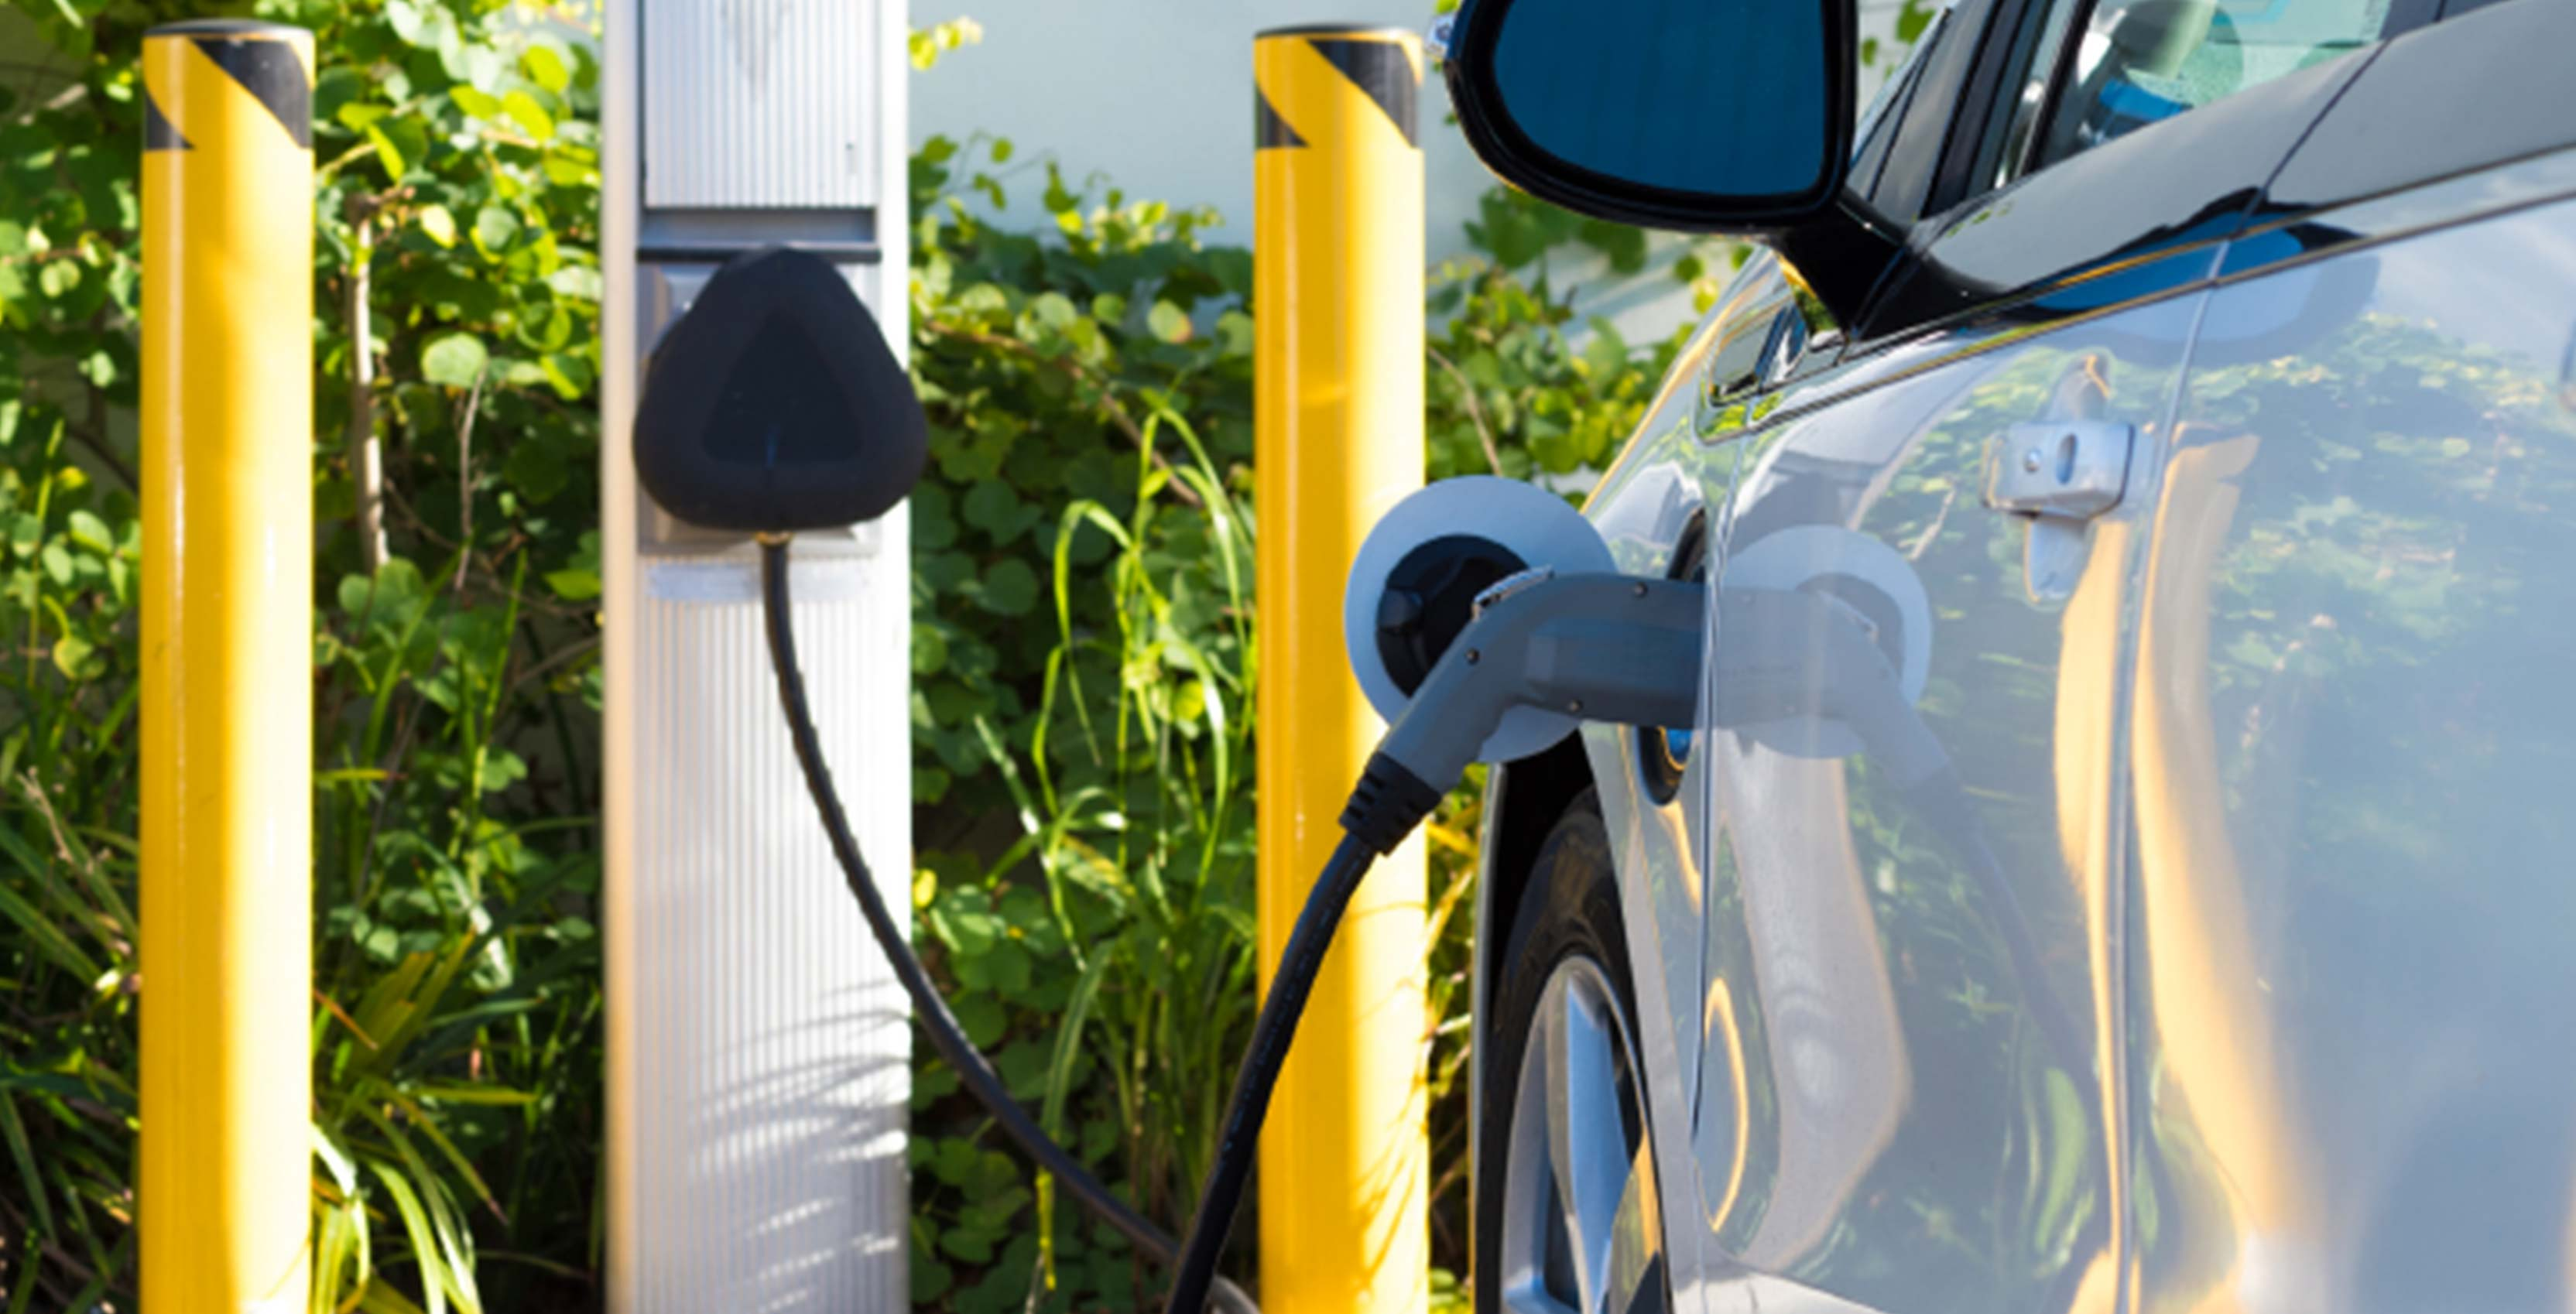 Canadian Tire to build 53 electric vehicle chargers across the country